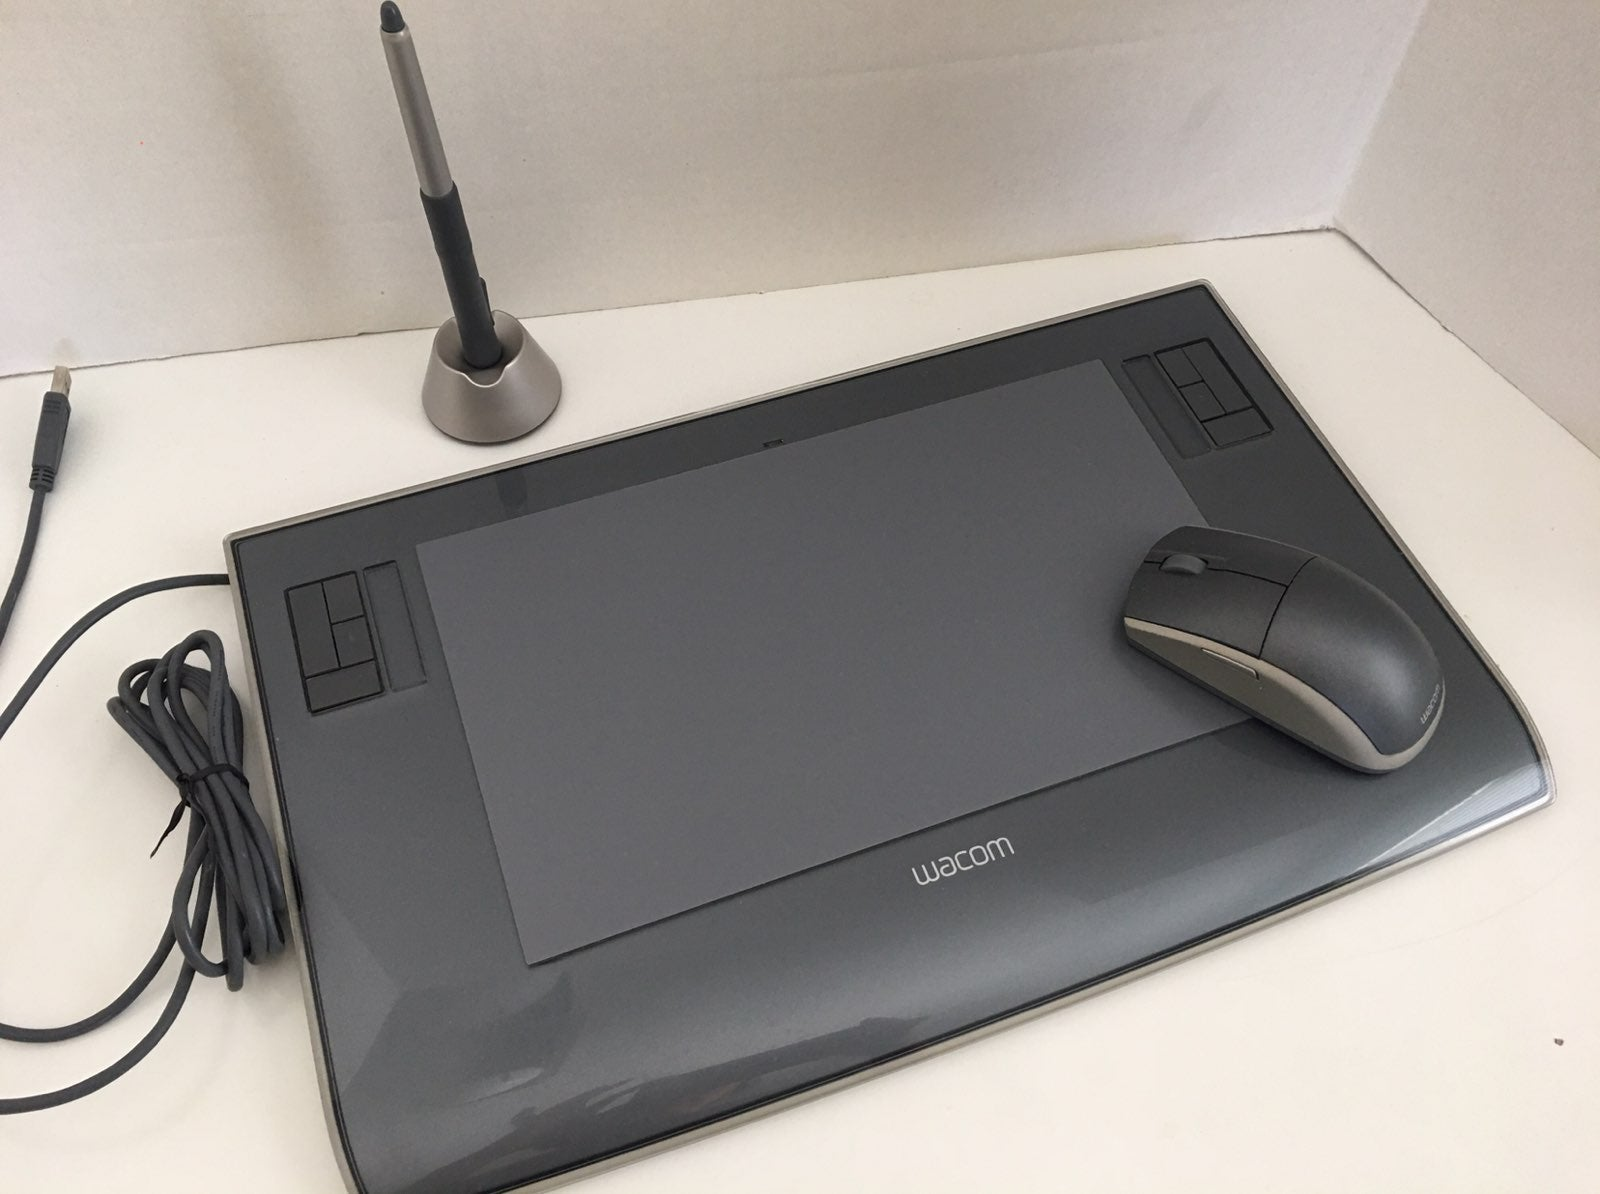 Wacom Intuos 3 Drawing Tablet